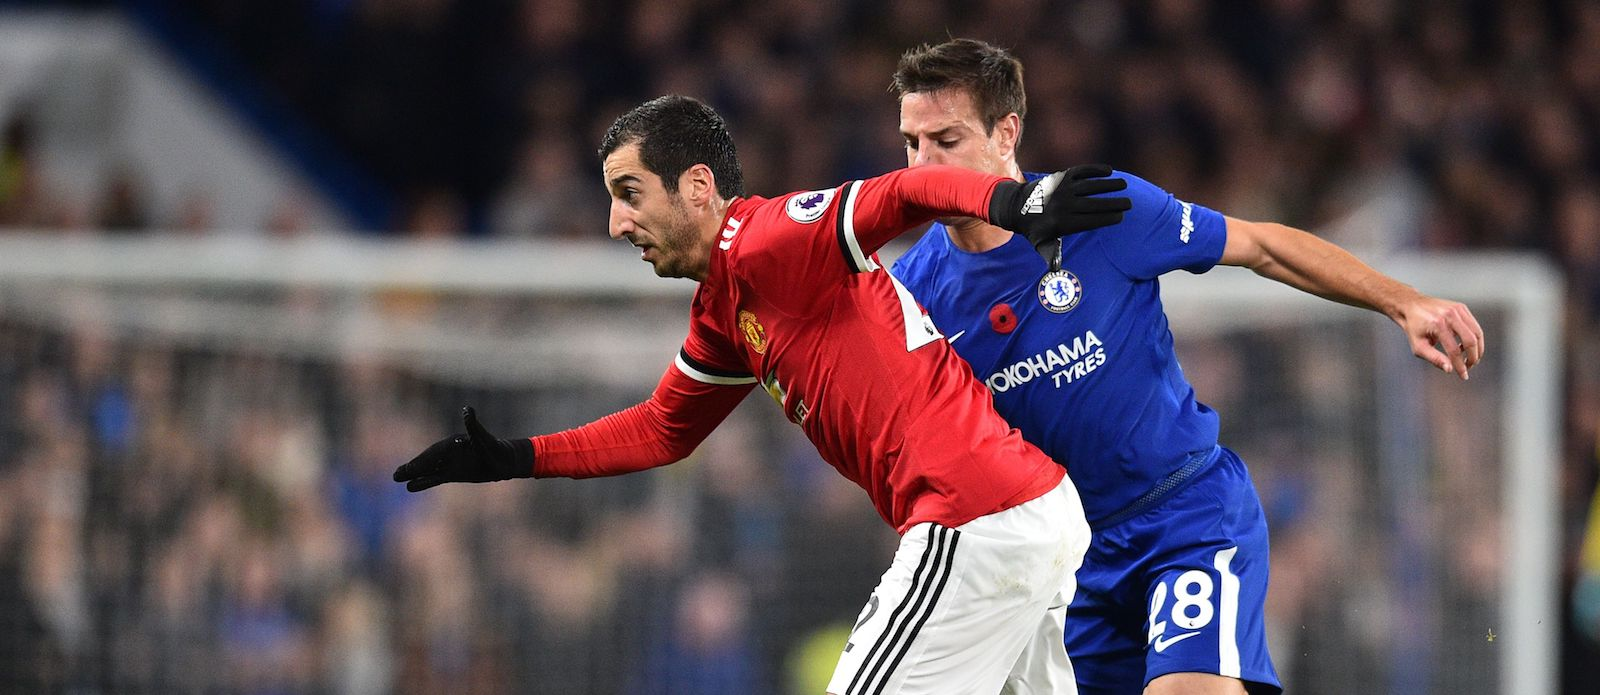 Arsenal's Henrikh Mkhitaryan opens up on why he left Manchester United